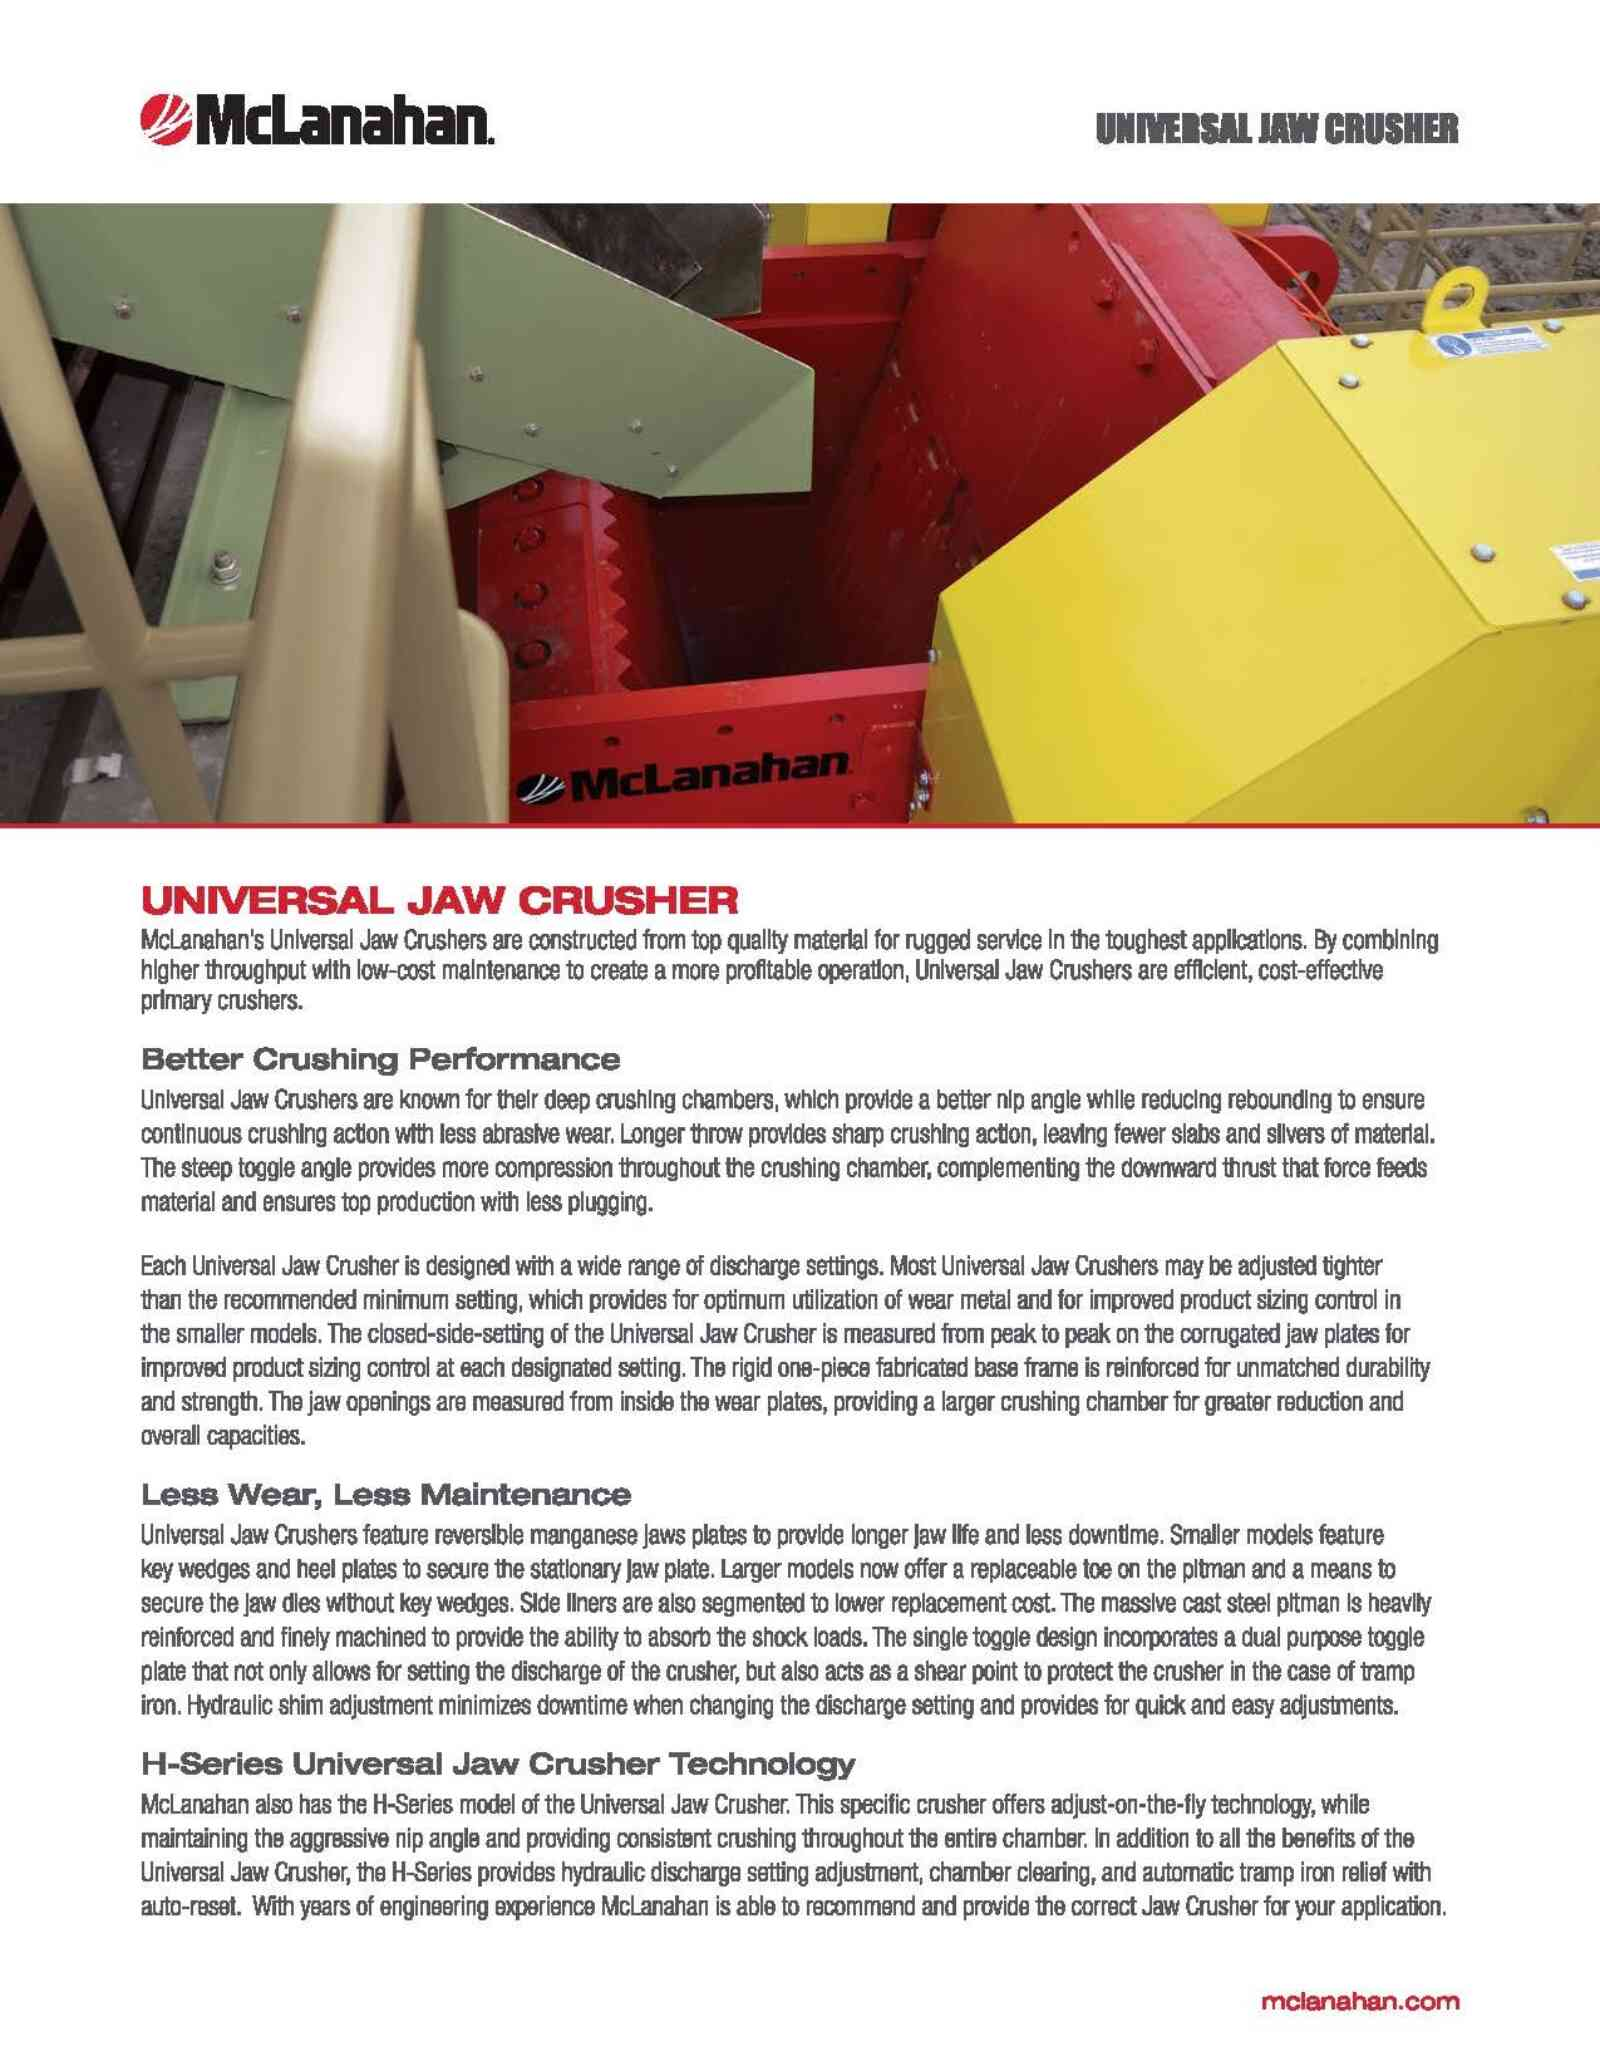 Universal Jaw Crusher Brochure Image Page 1